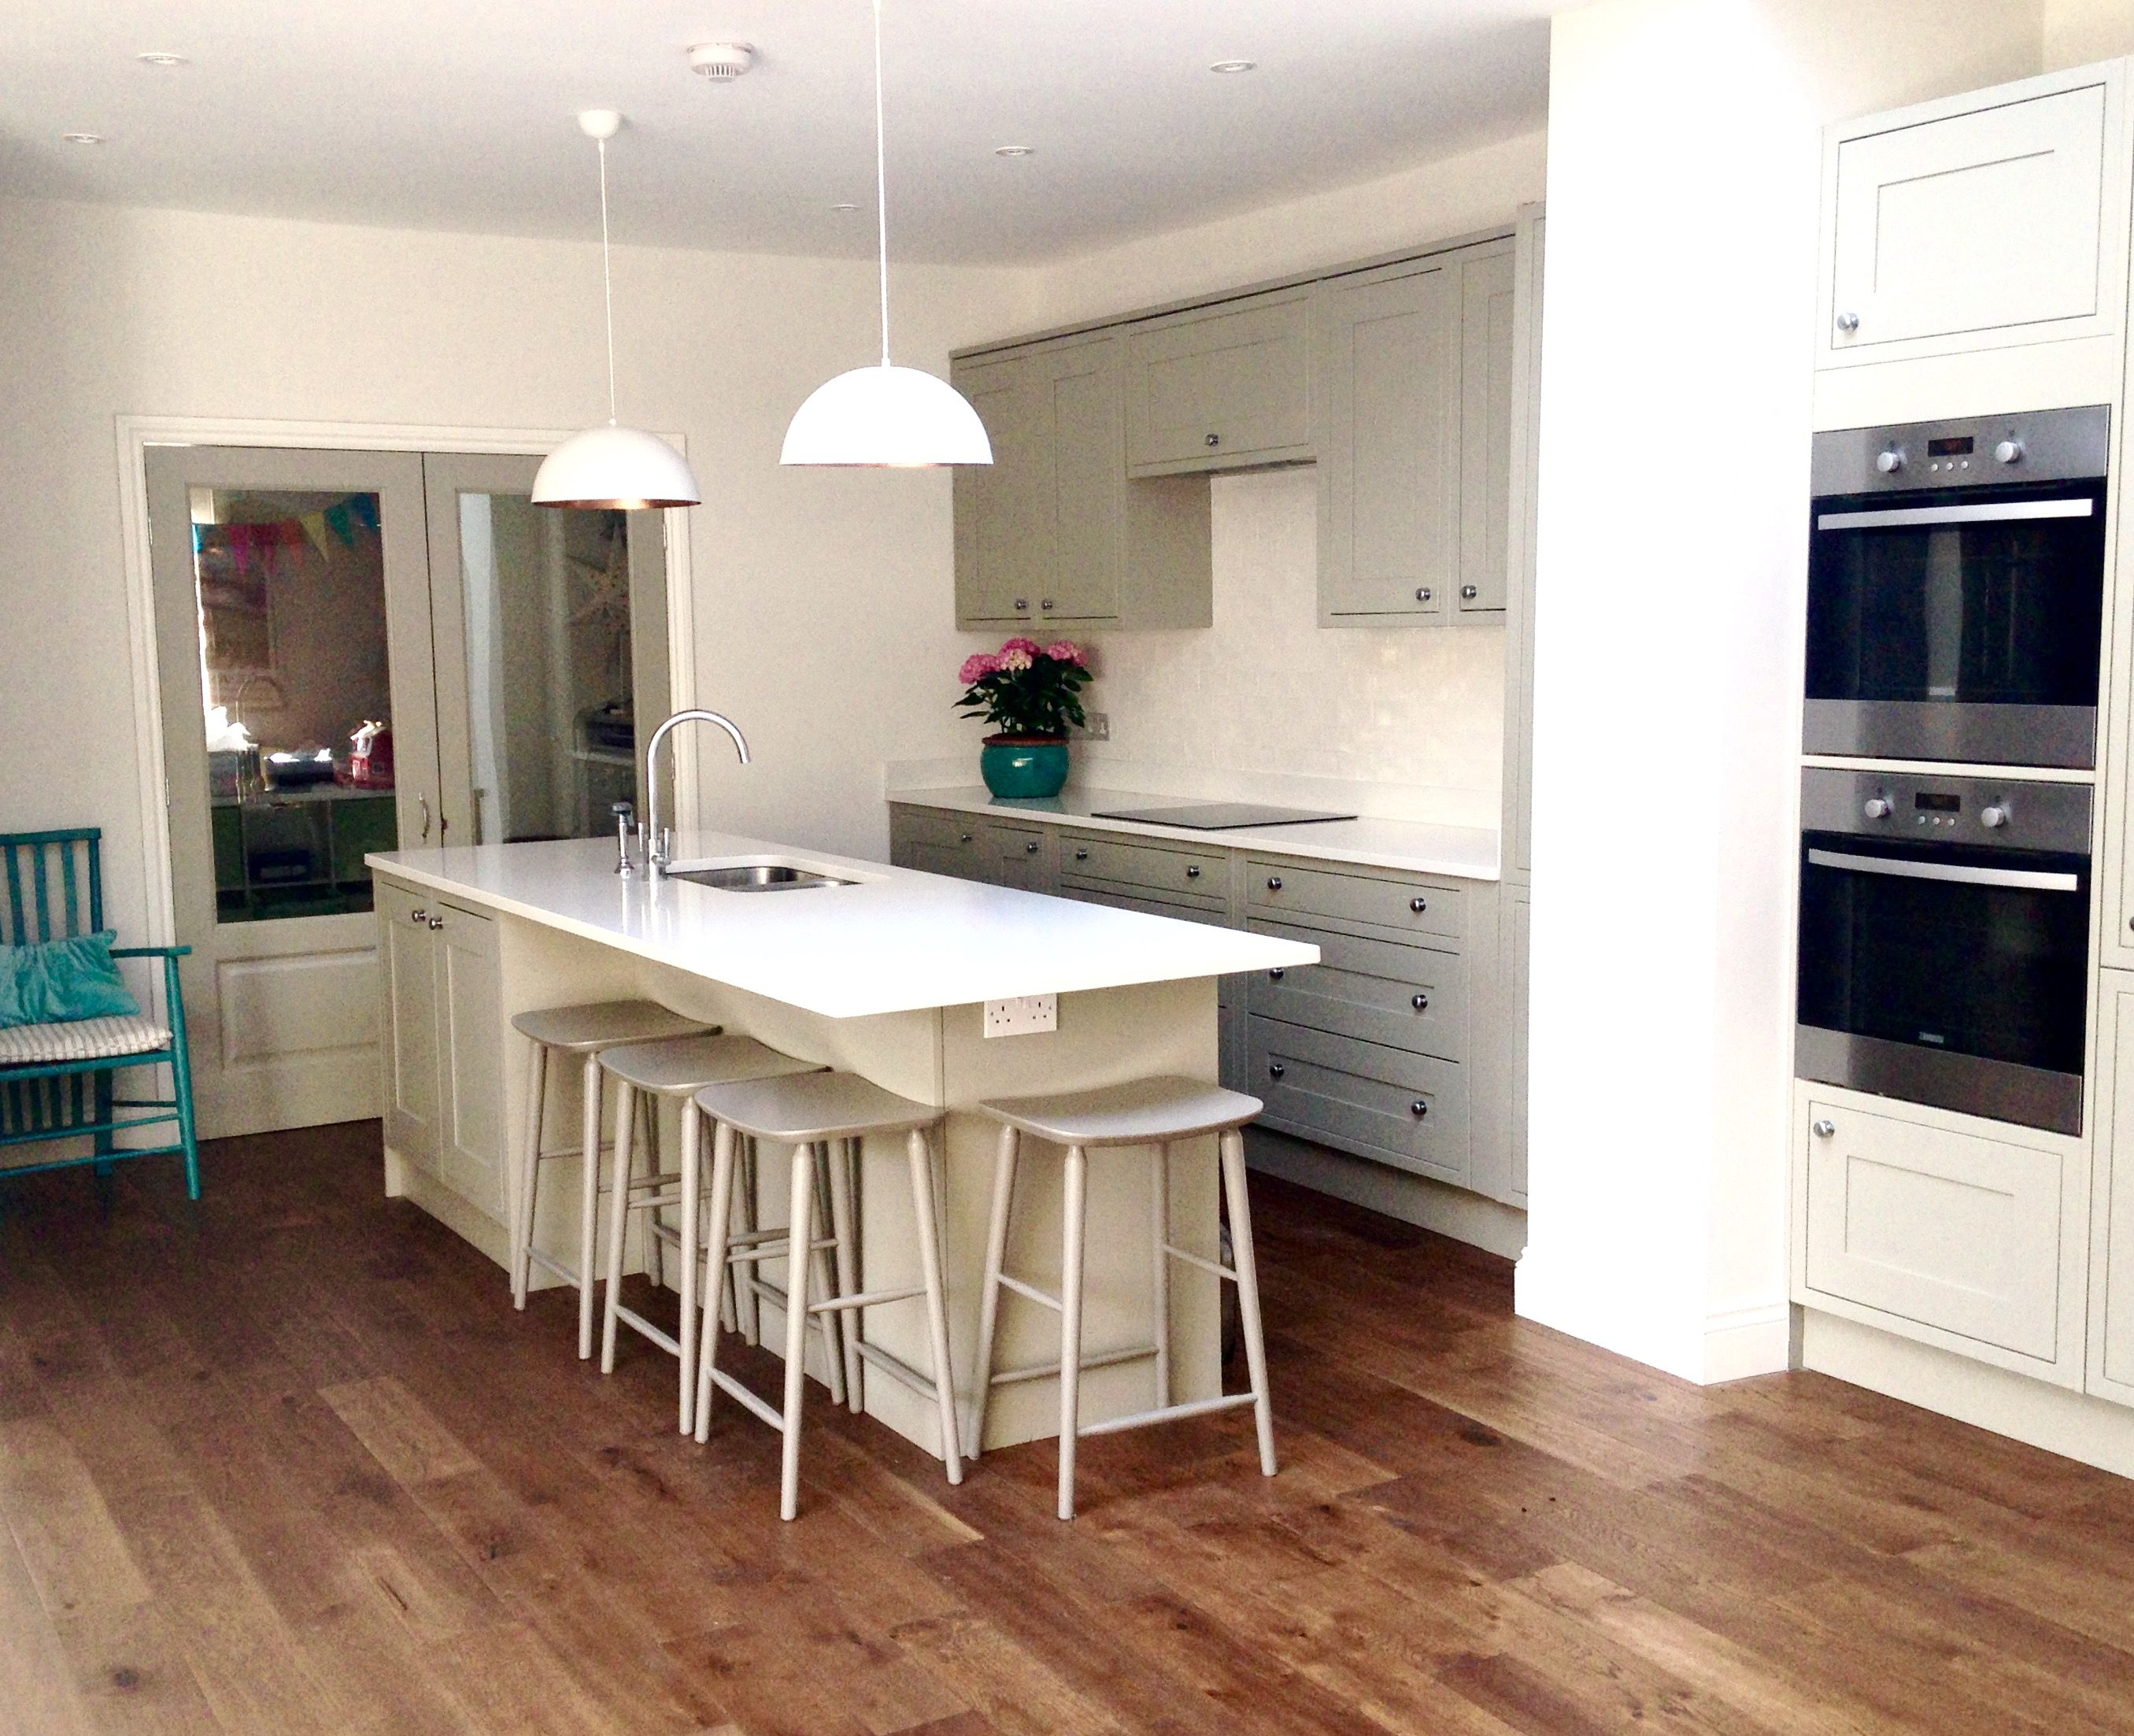 Really Nice Kitchens kitchen units are from wickes - heritage grey. they are a really